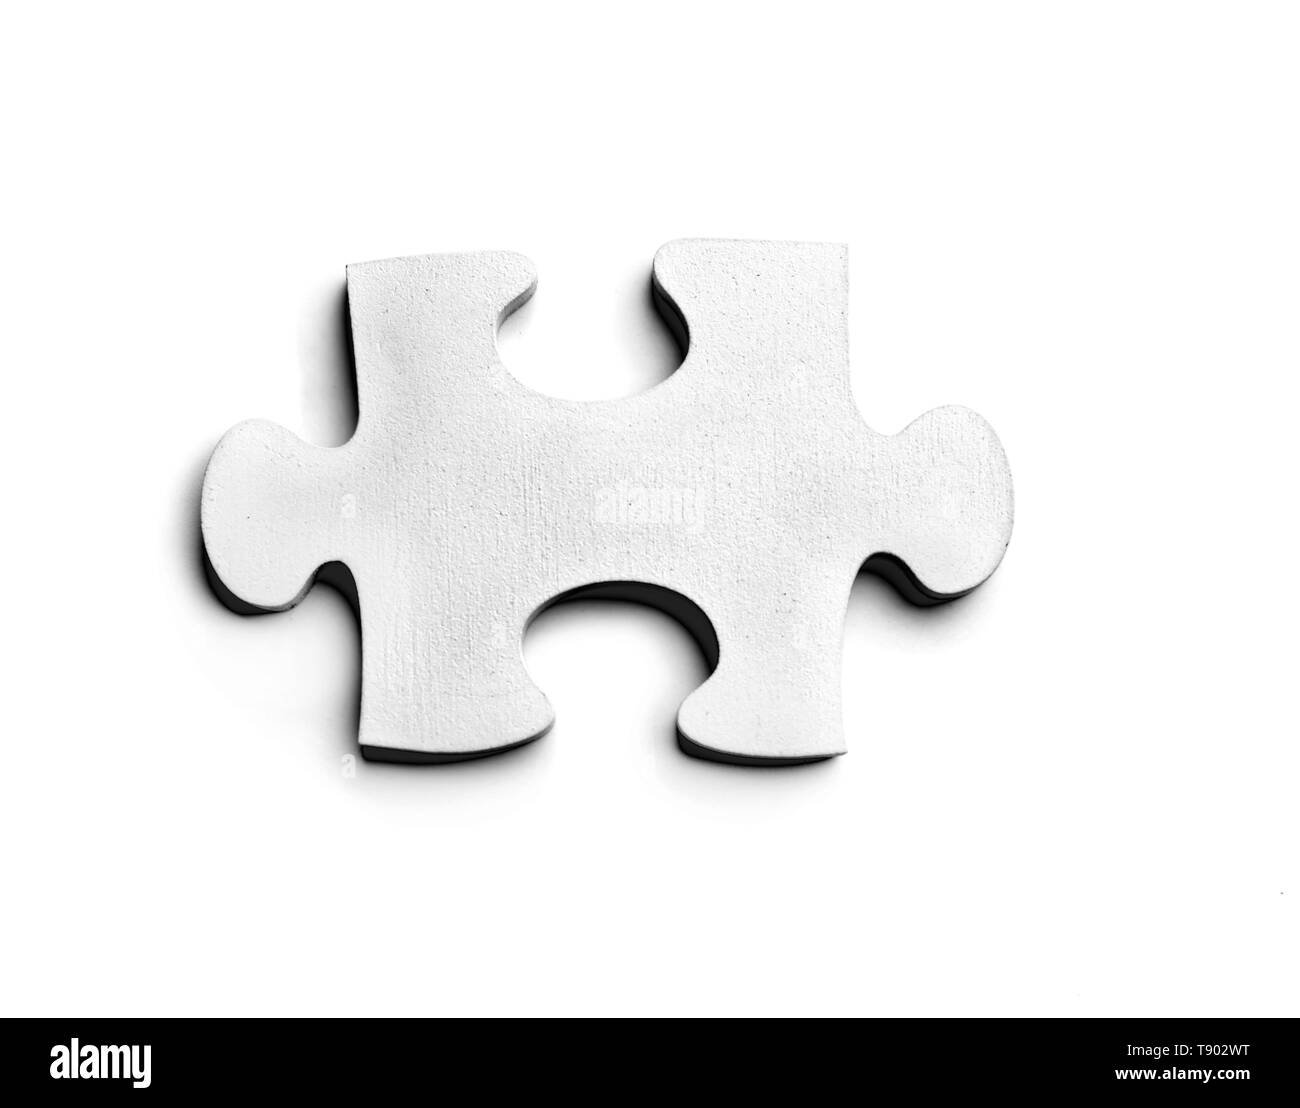 Piece of jigsaw puzzle on white background - Stock Image